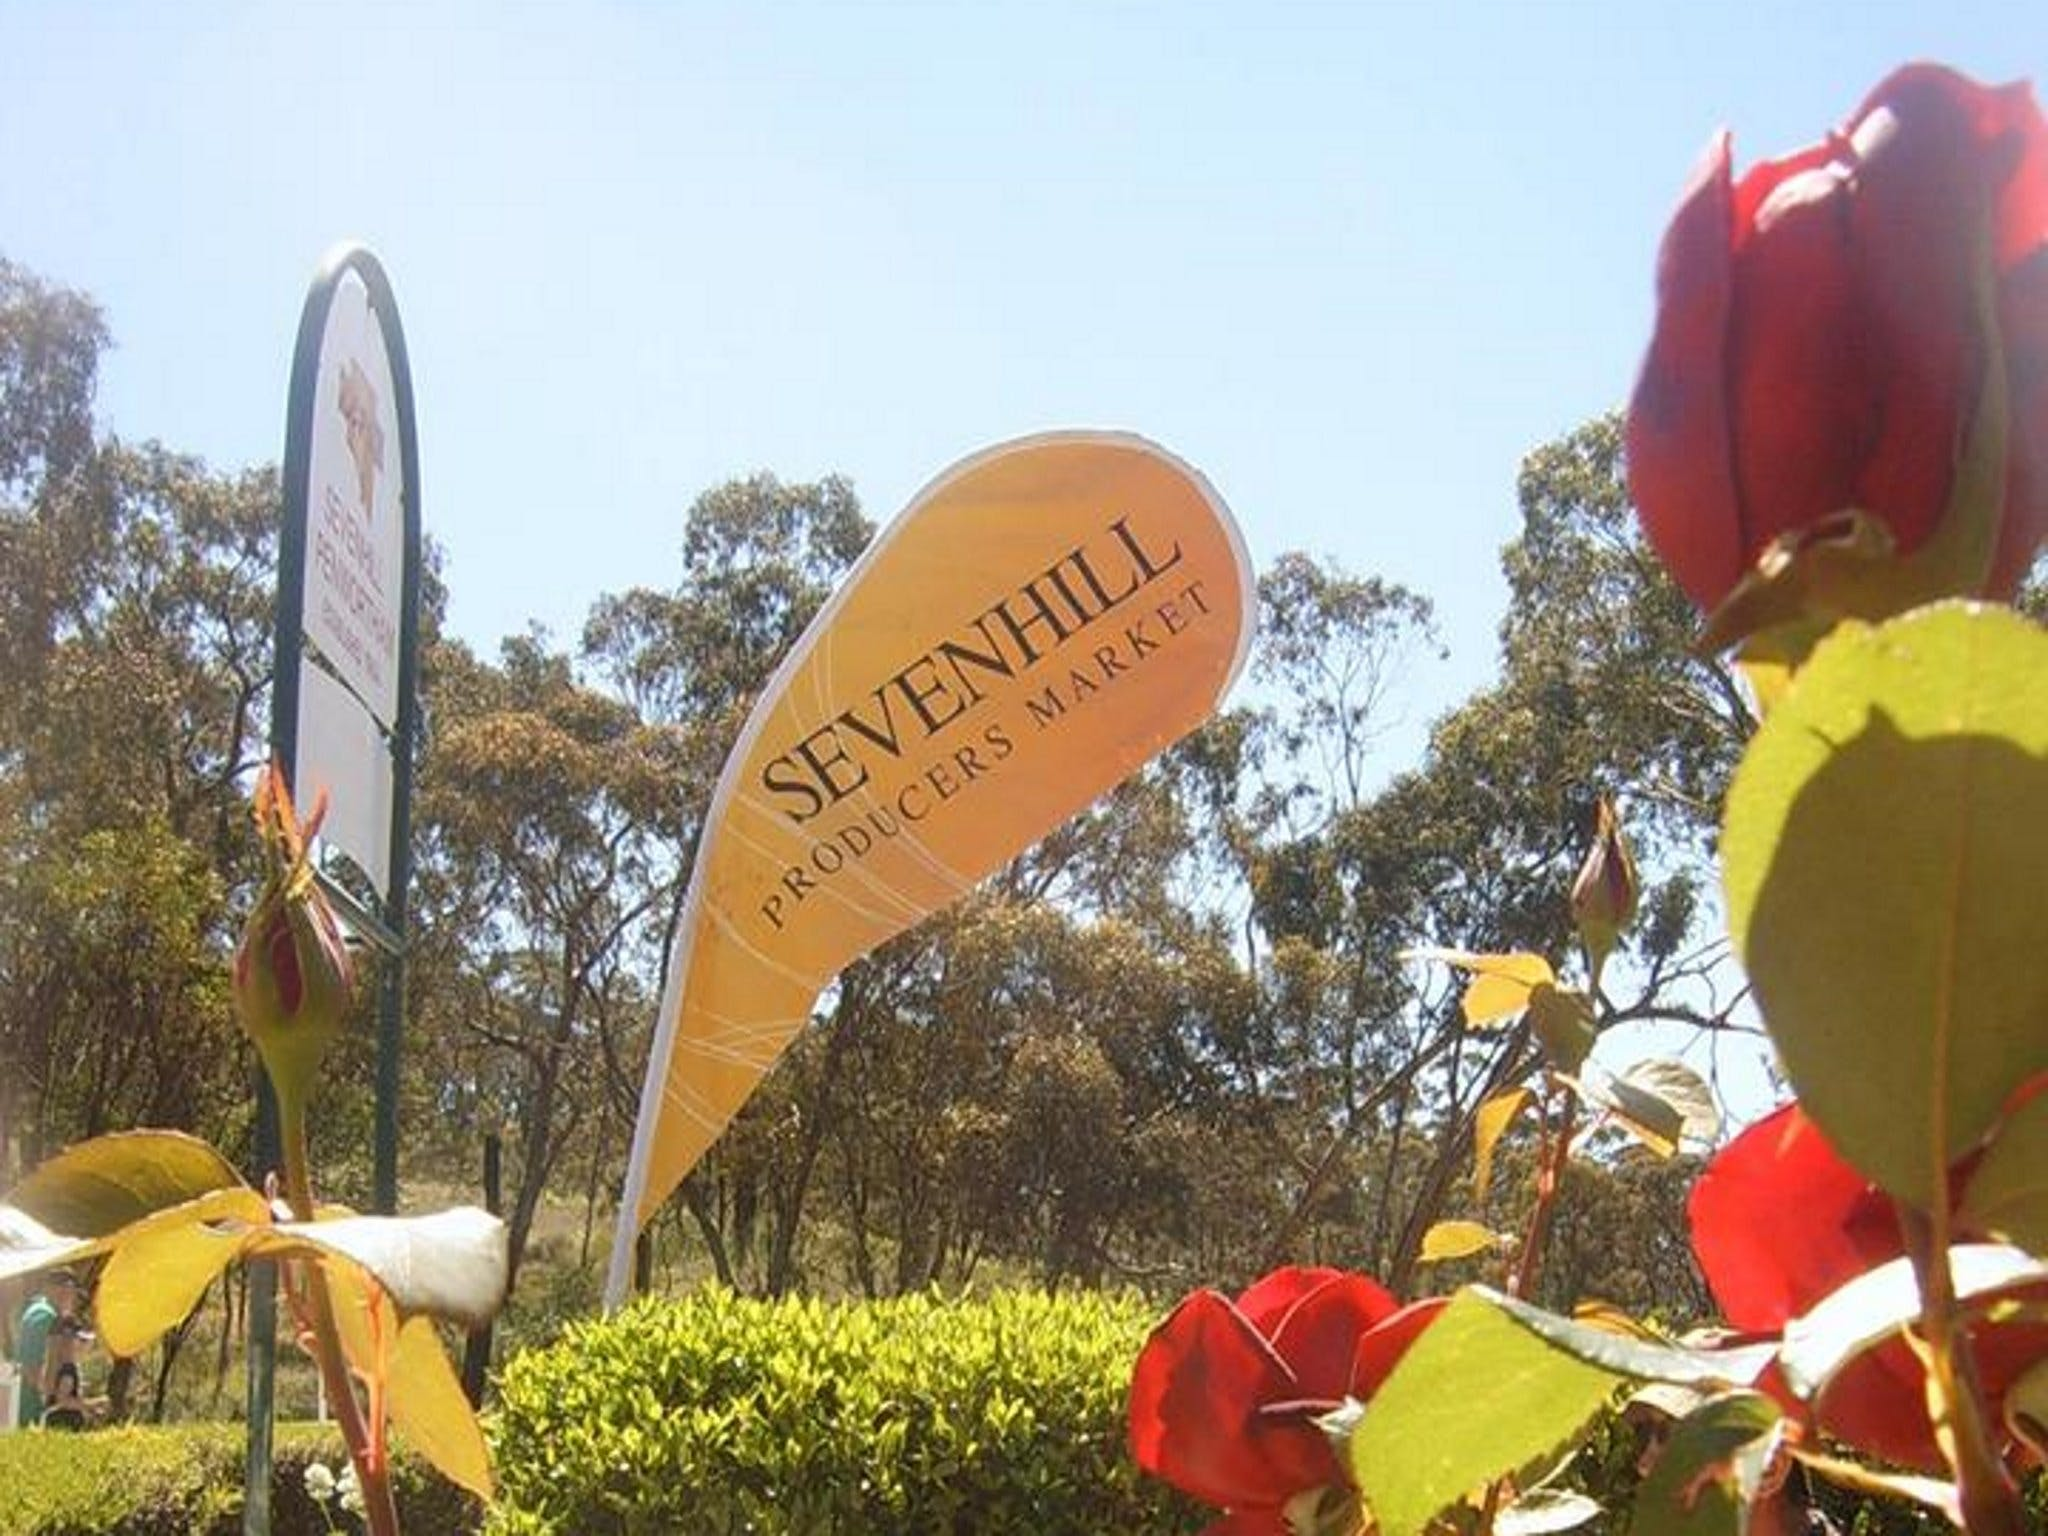 Sevenhill Producers Market - Pubs and Clubs